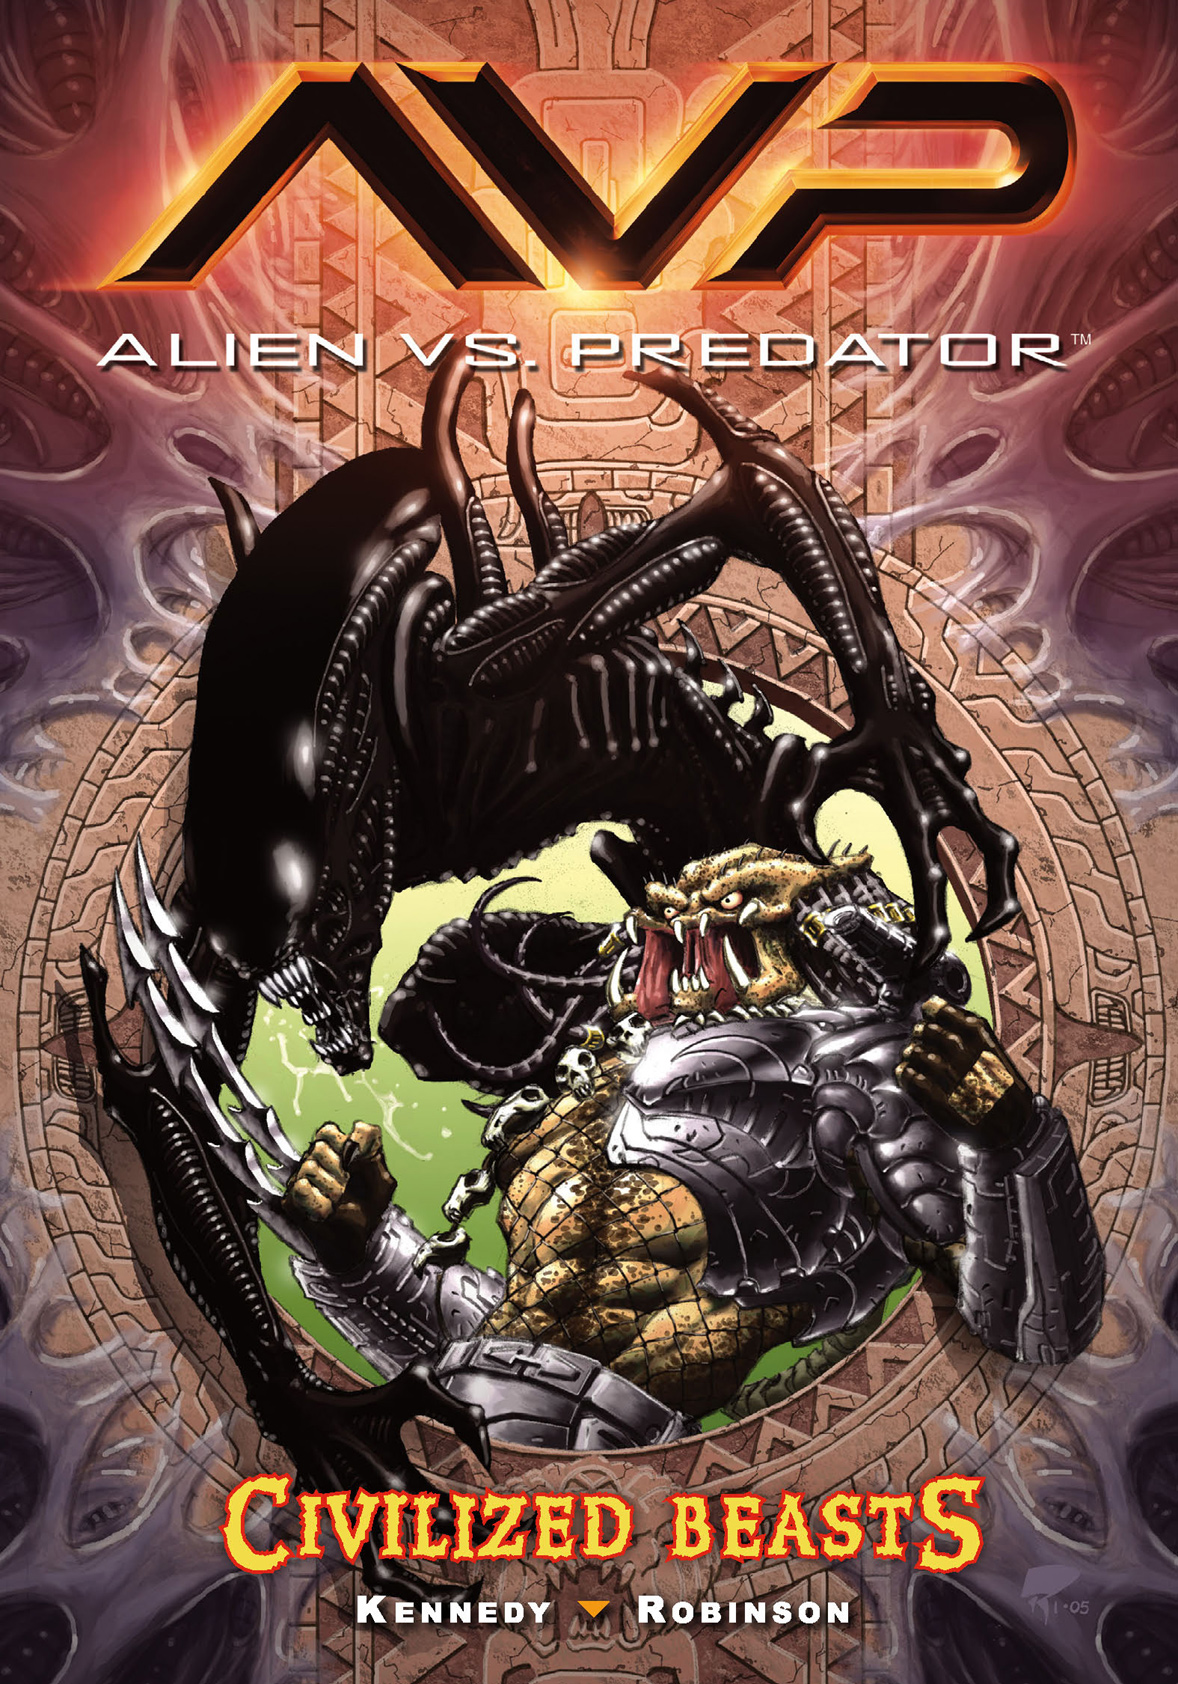 Alien vs. Predator Volume 2: Civilized Beasts